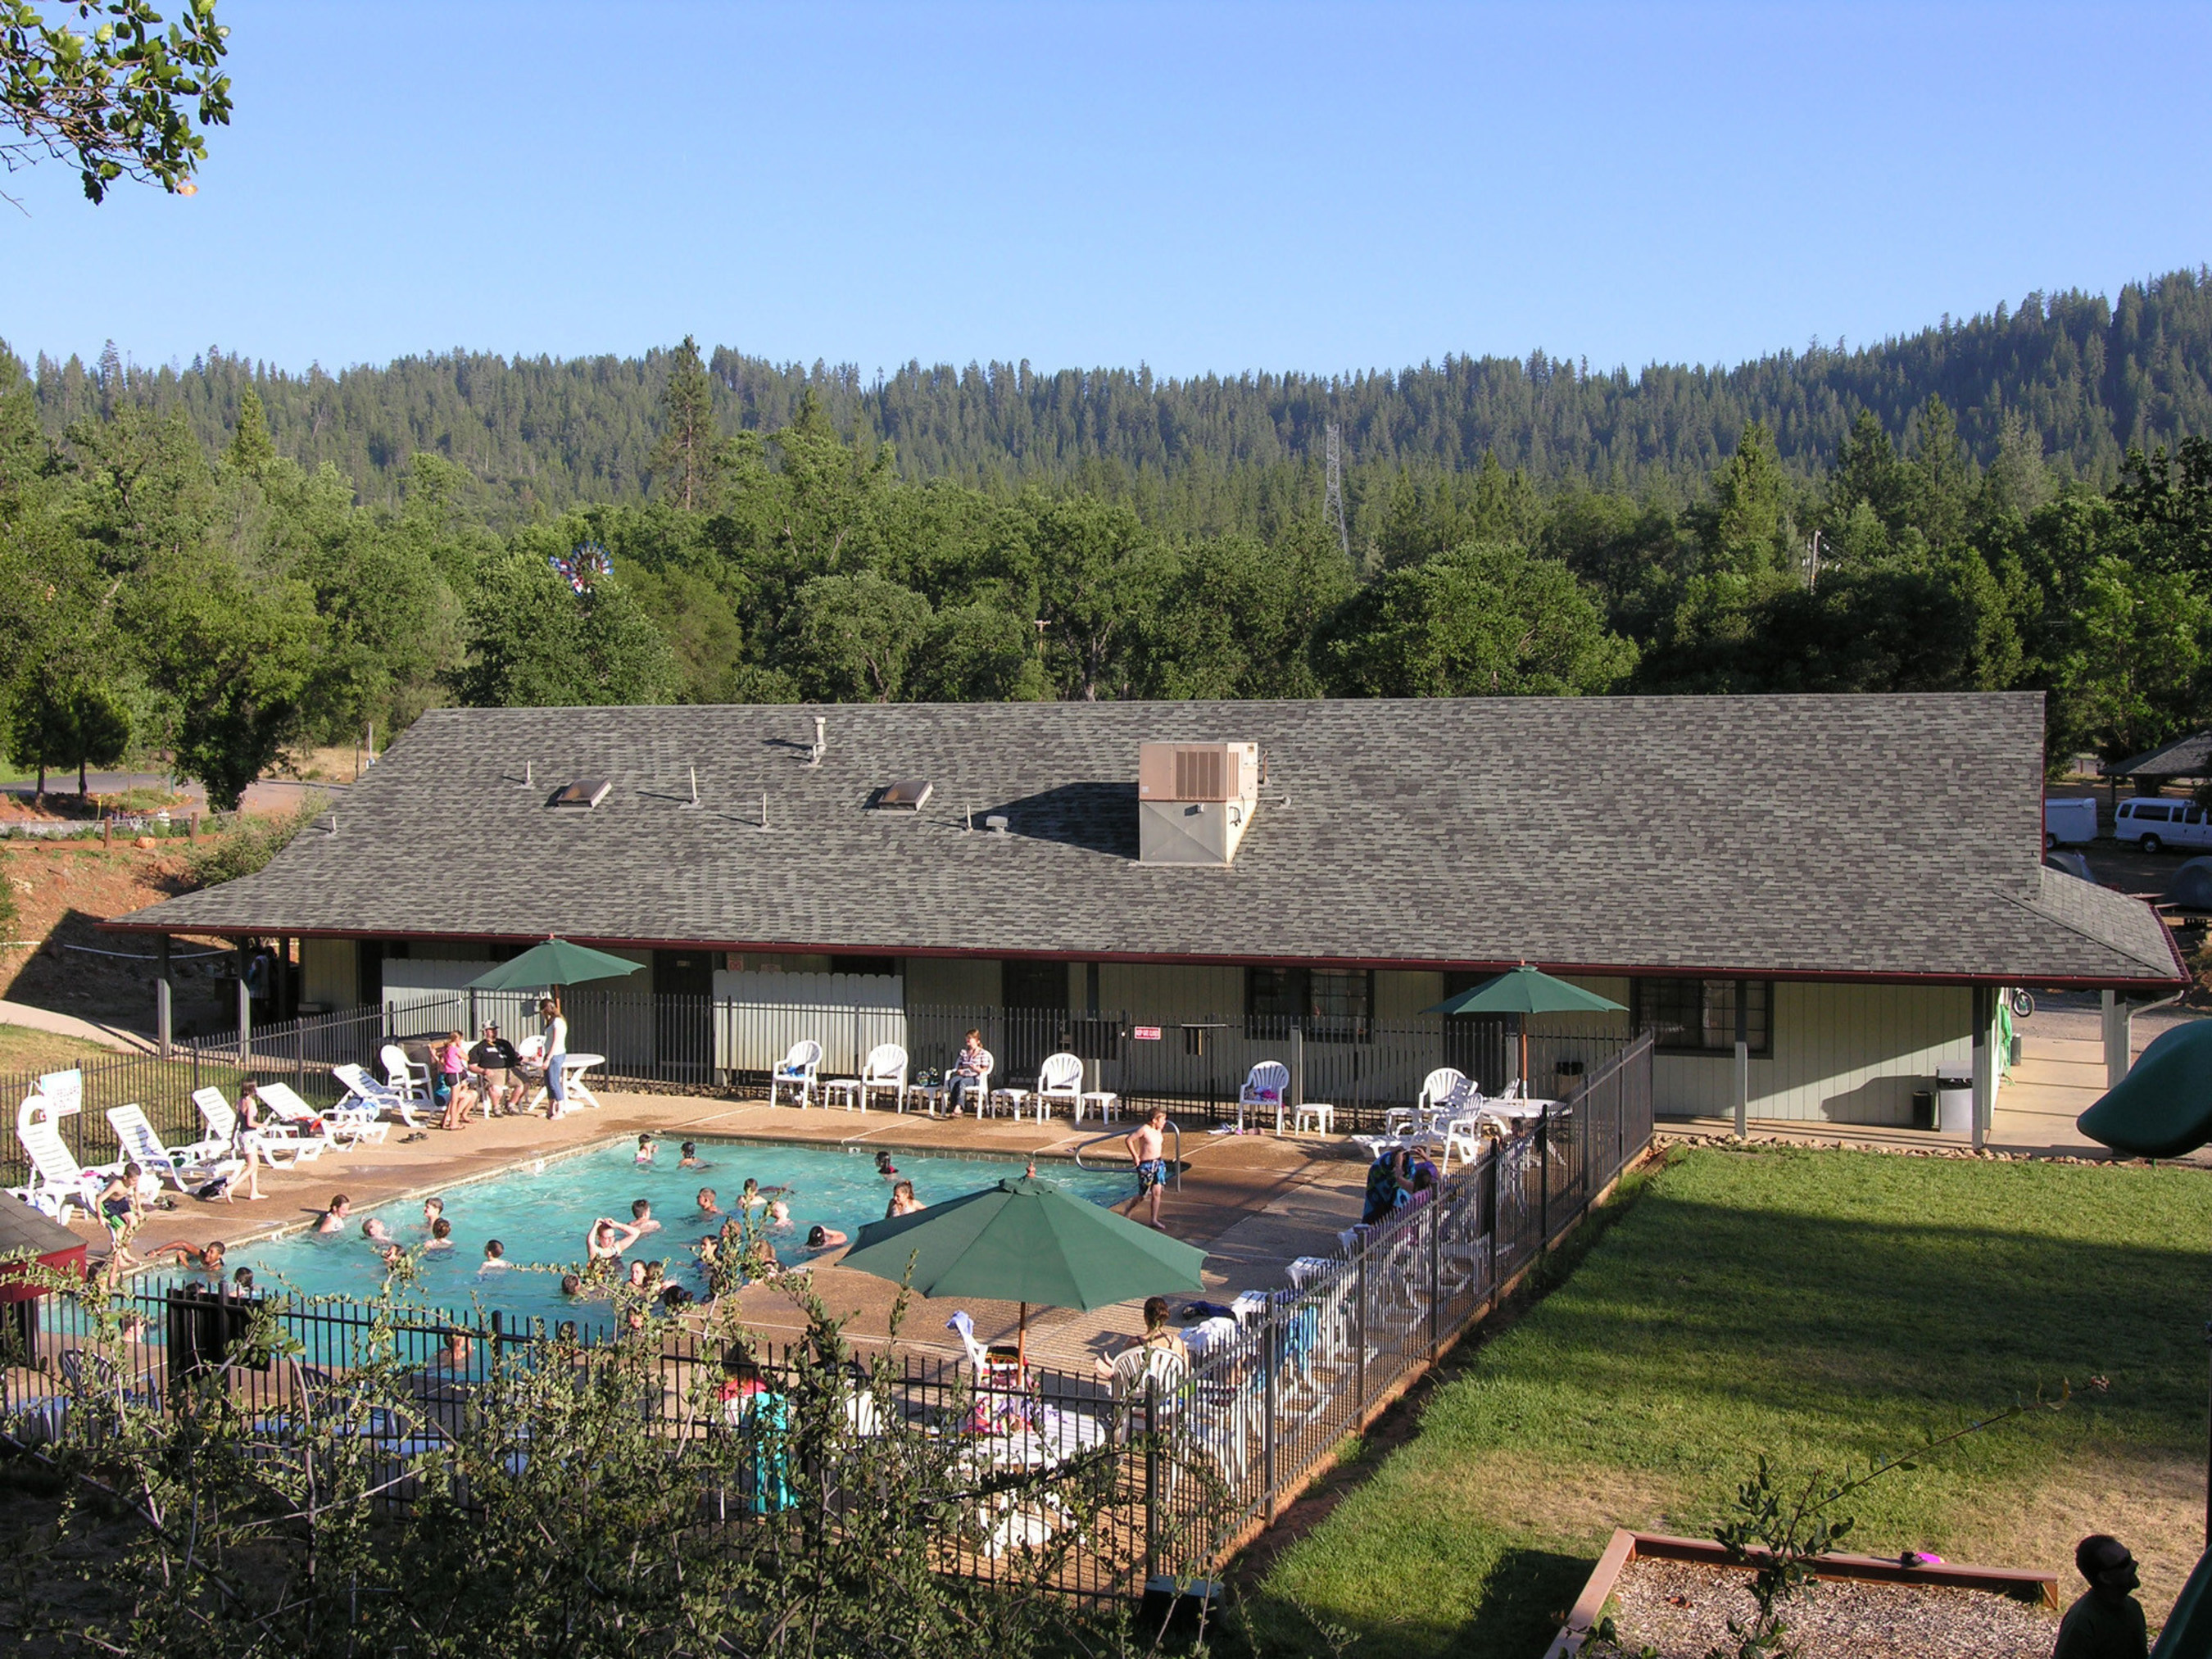 The swimming pools at Yosemite Pines RV and Family Lodging is popular with guests after they return from a visit to Yosemite National Park or the Gold Rush Towns (PRNewsFoto/Yosemite Pines RV Resort...)